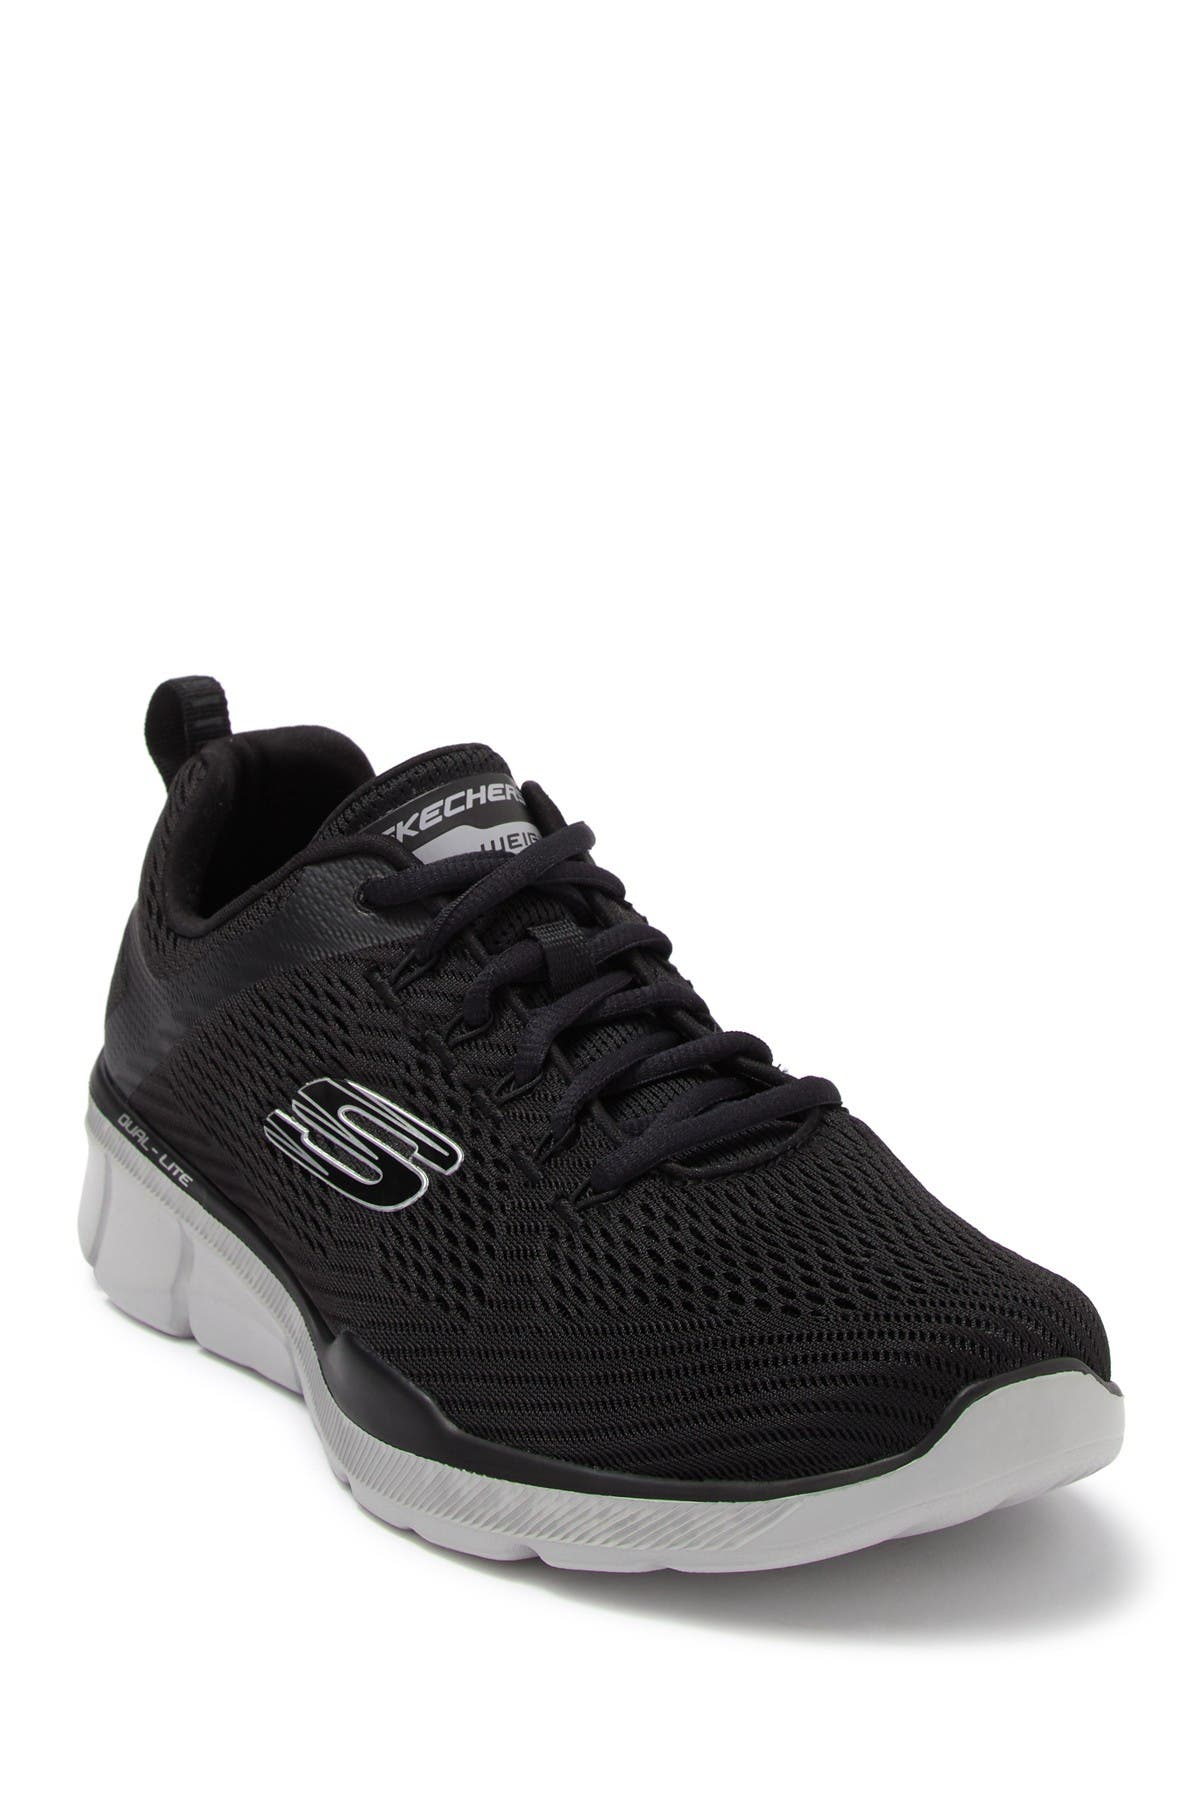 Skechers   Equalizer 3.0 Lace-Up